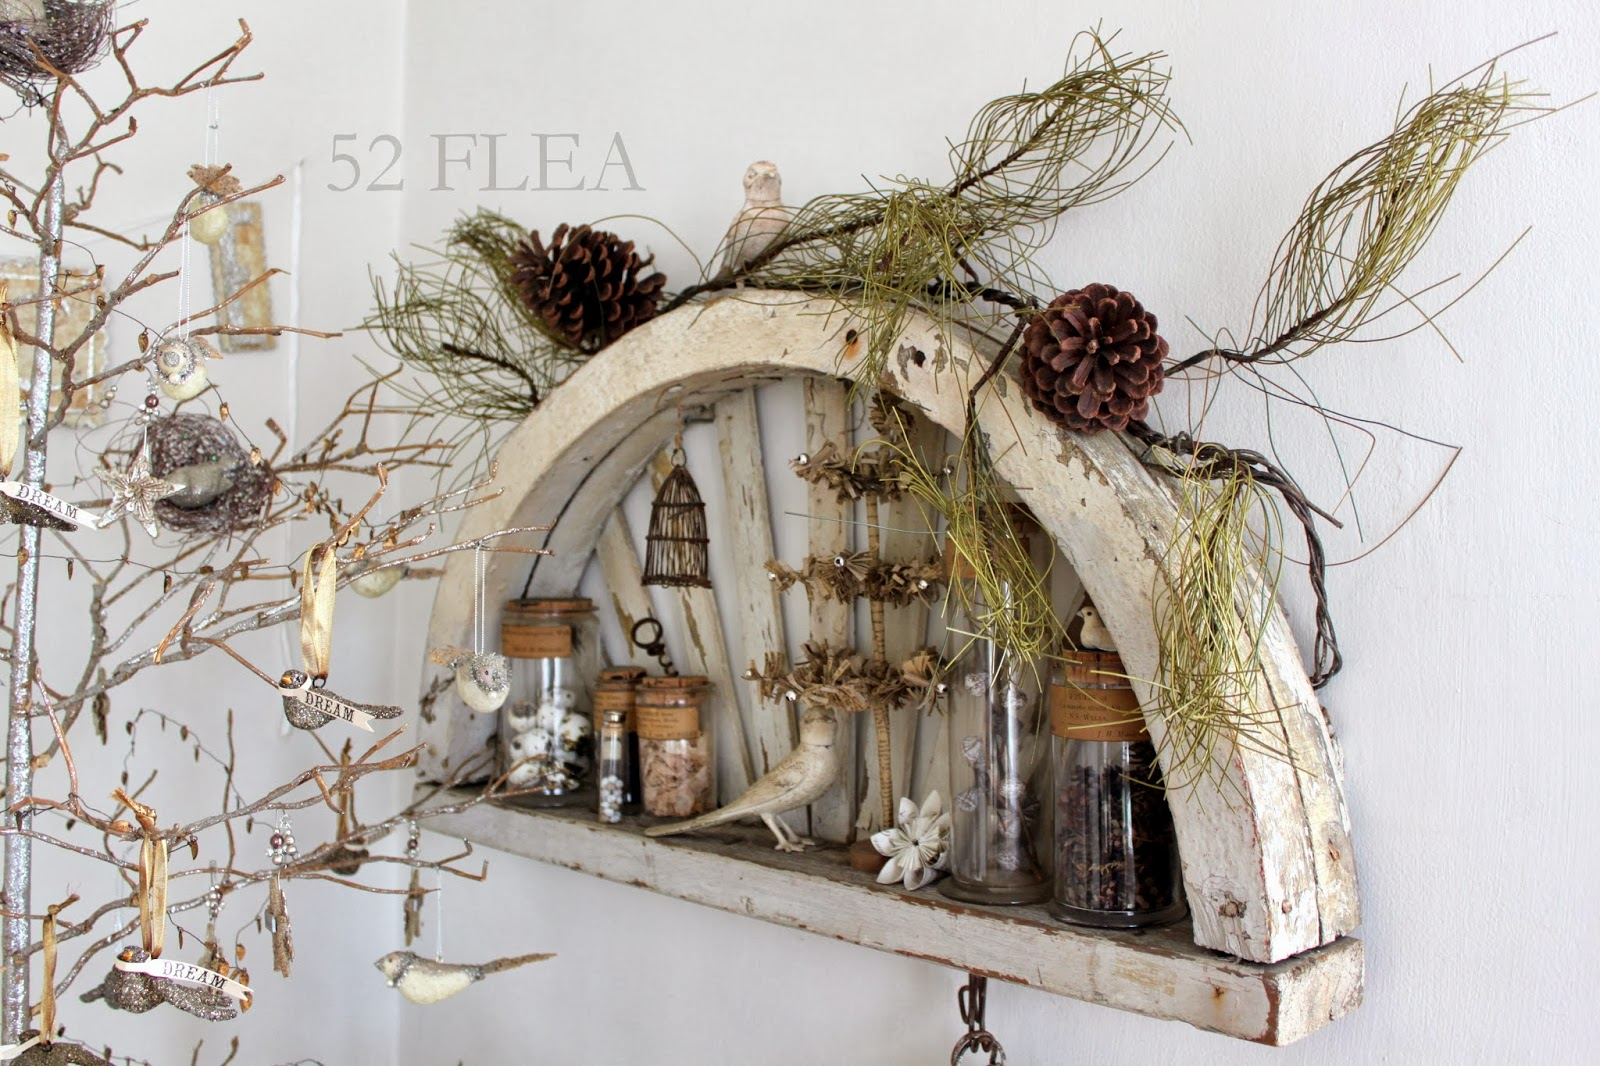 52 FLEA: Paula39;s Cozy Christmas Cottage 2013  Part 1